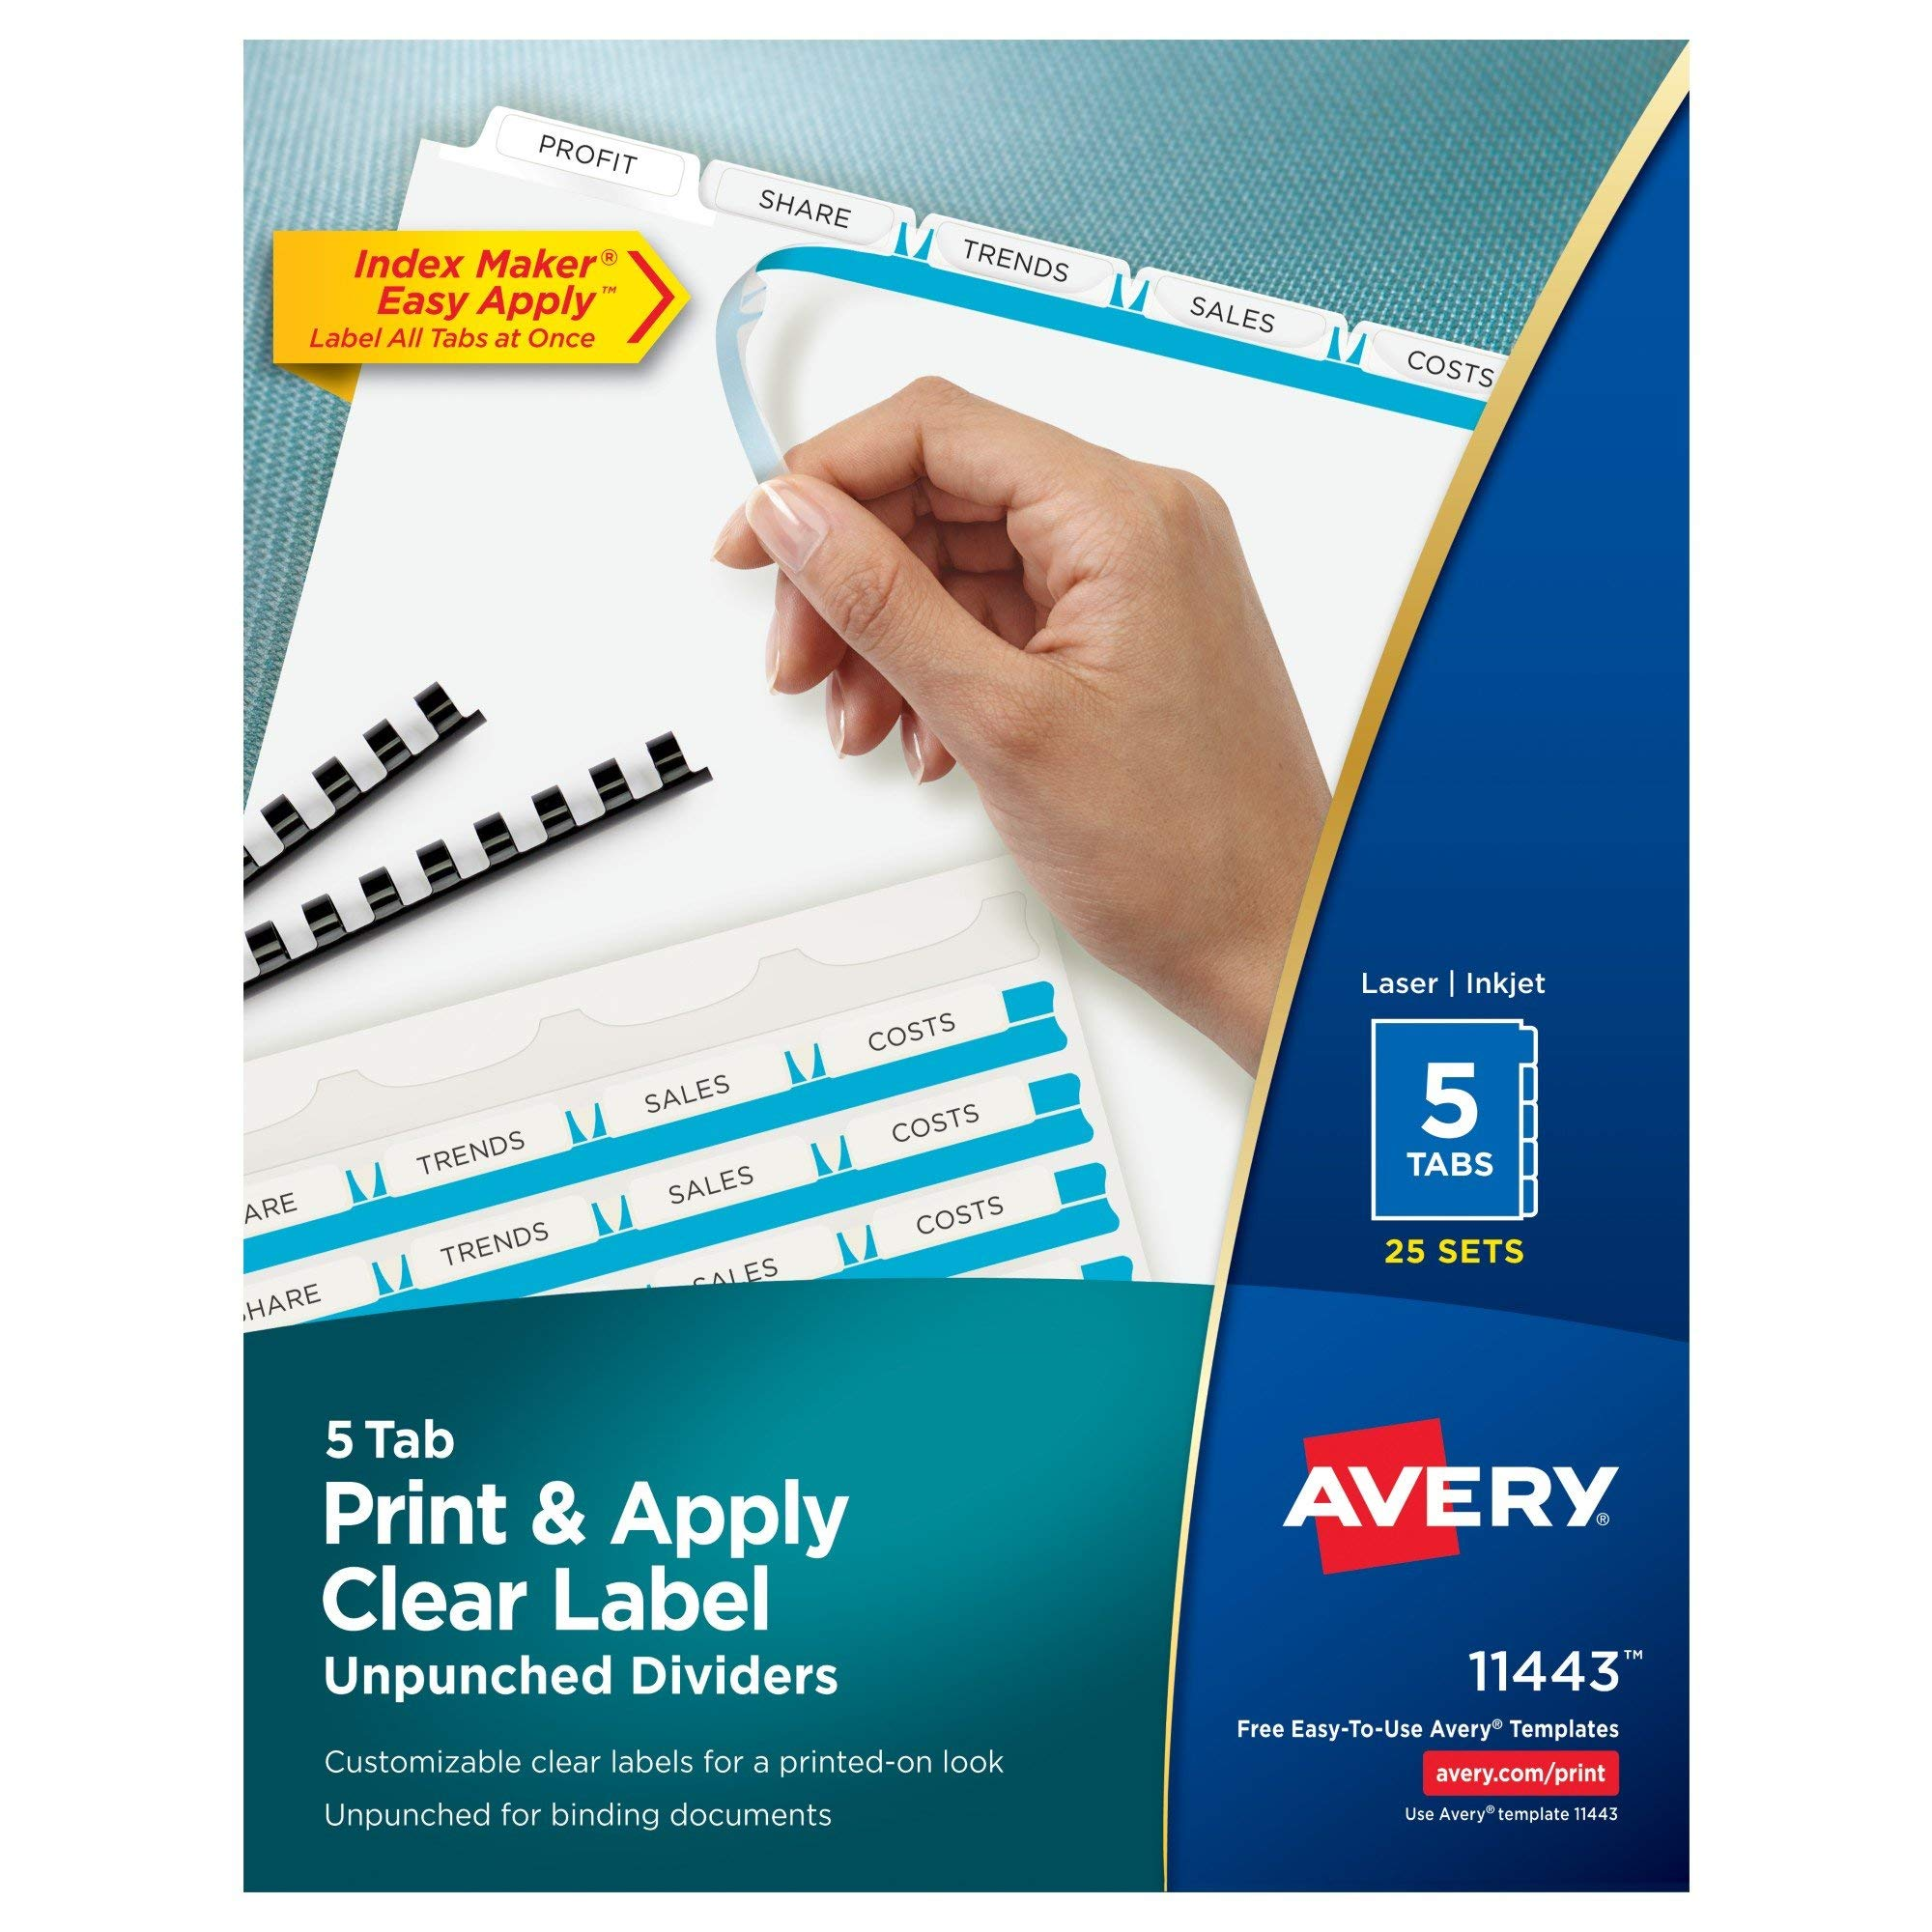 Avery Print & Apply Clear Label Unpunched Dividers, Index Maker Easy Apply Printable Label Strip, 5 White Tabs, 25 Sets, Case Pack of 6 (11433) (Renewed)